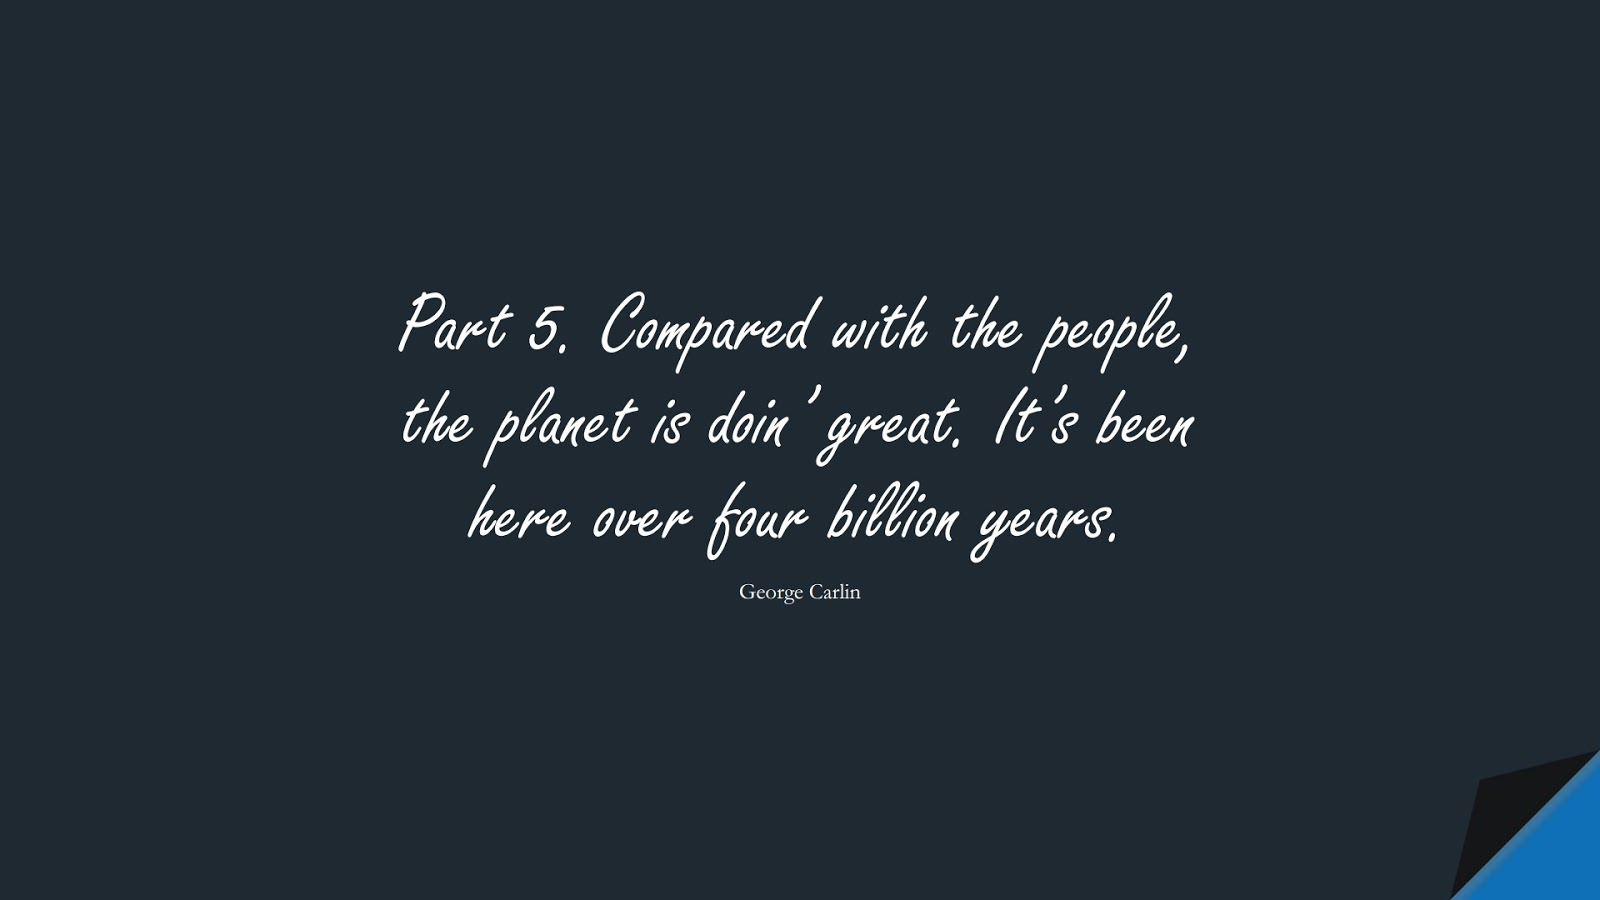 Part 5. Compared with the people, the planet is doin' great. It's been here over four billion years. (George Carlin);  #HumanityQuotes